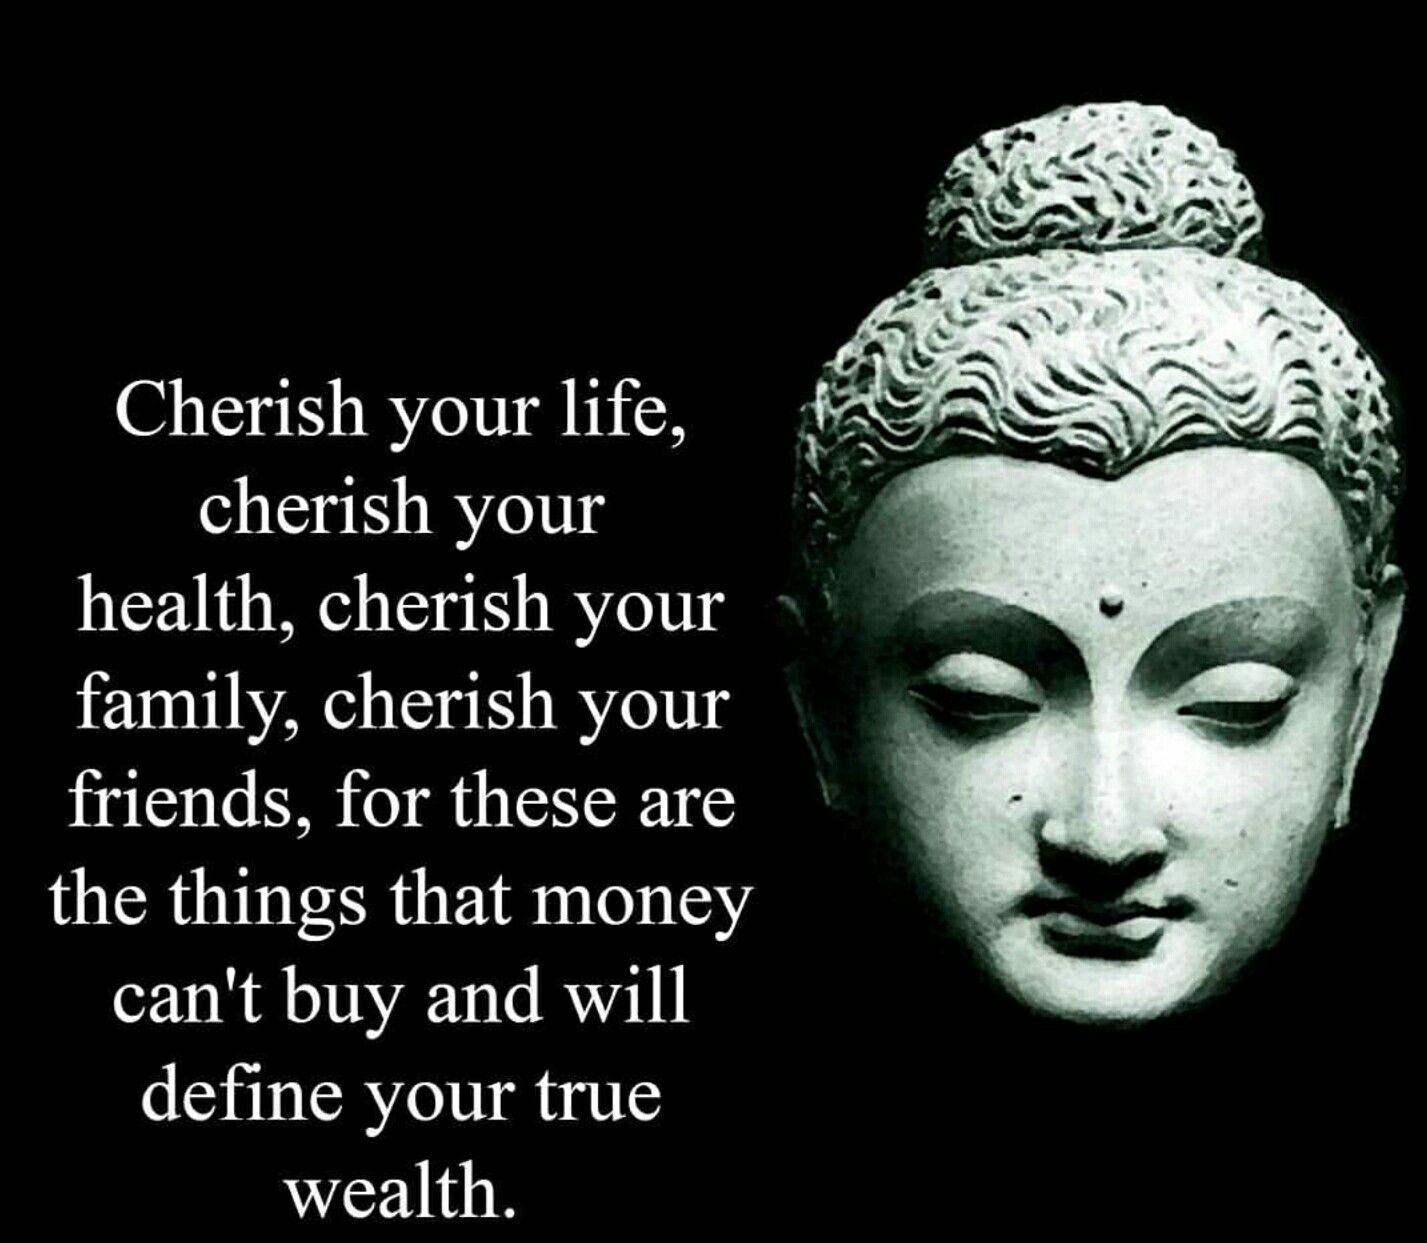 Buddha Family Quotes: That Is So True, Put Your Family And Friends First Before